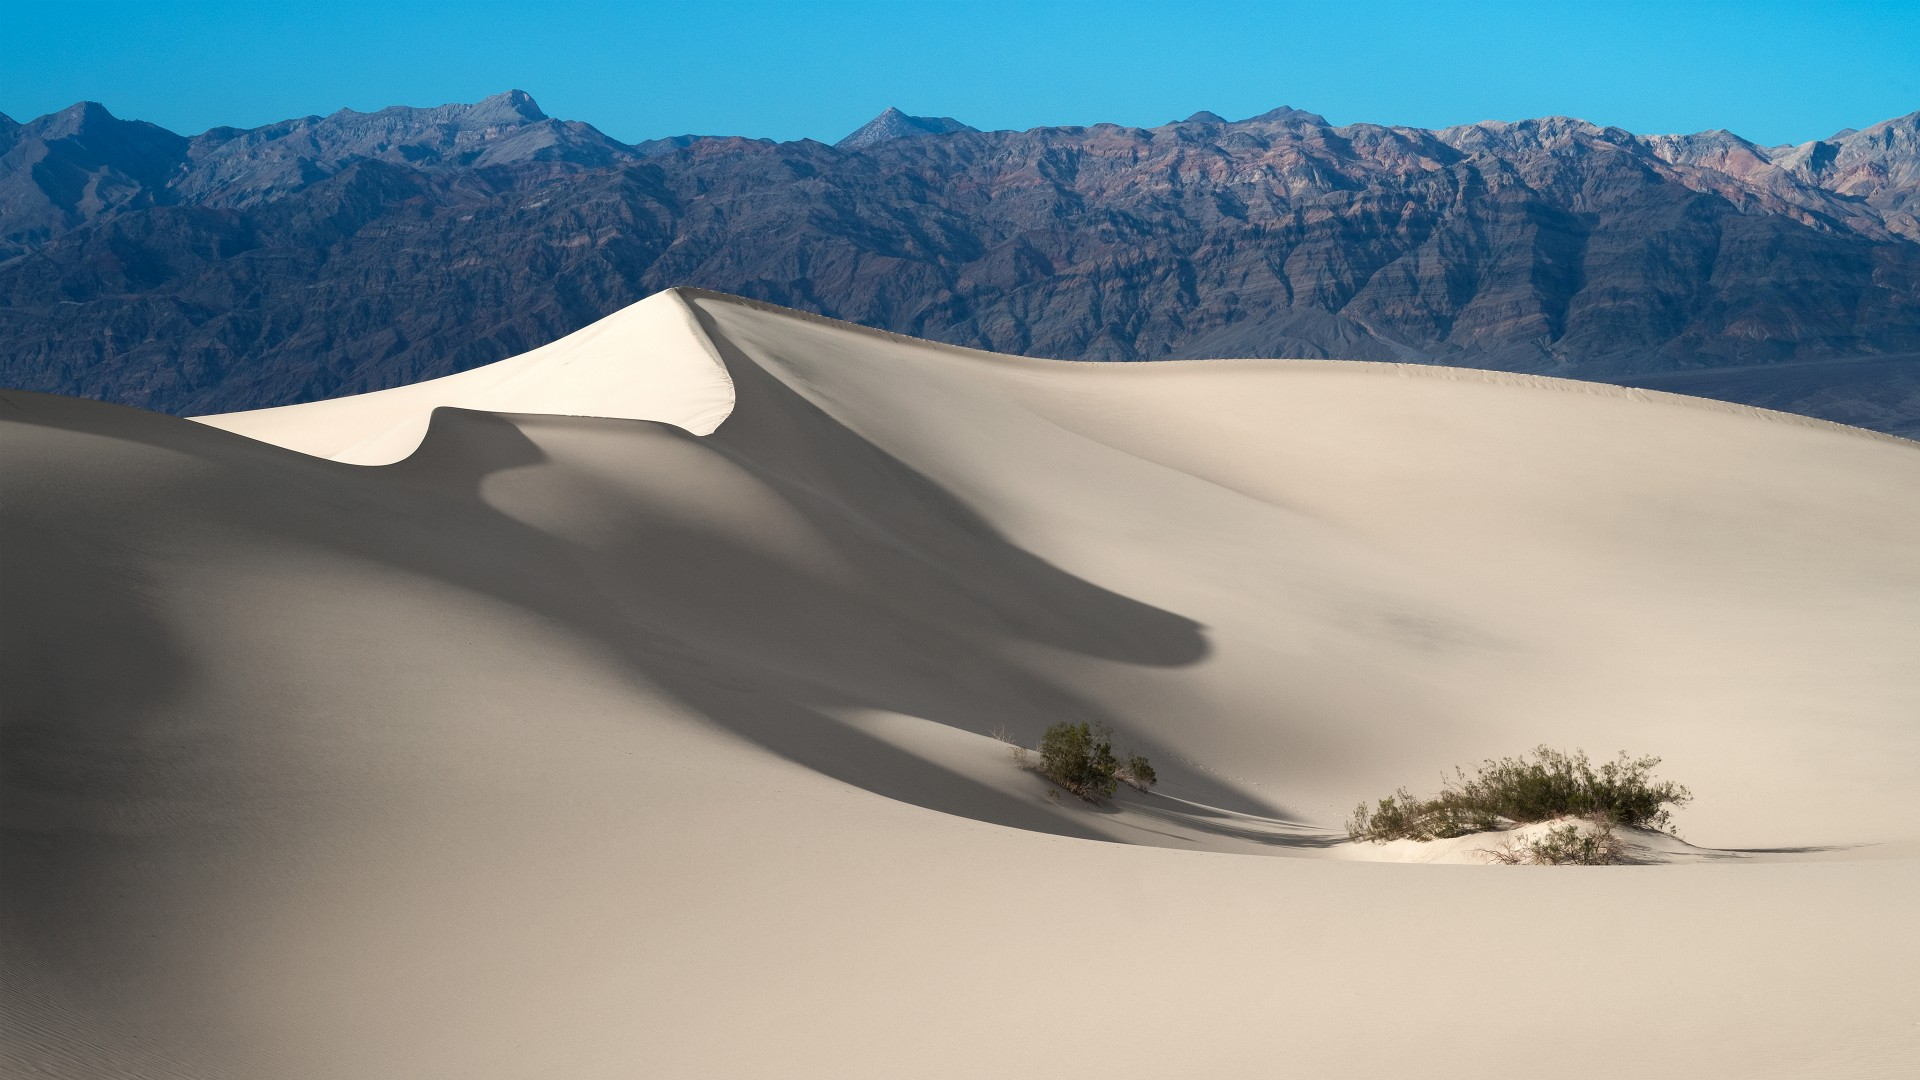 Original Iphone Wallpaper Earth Sand Dunes Death Valley National Park Wallpapers Hd